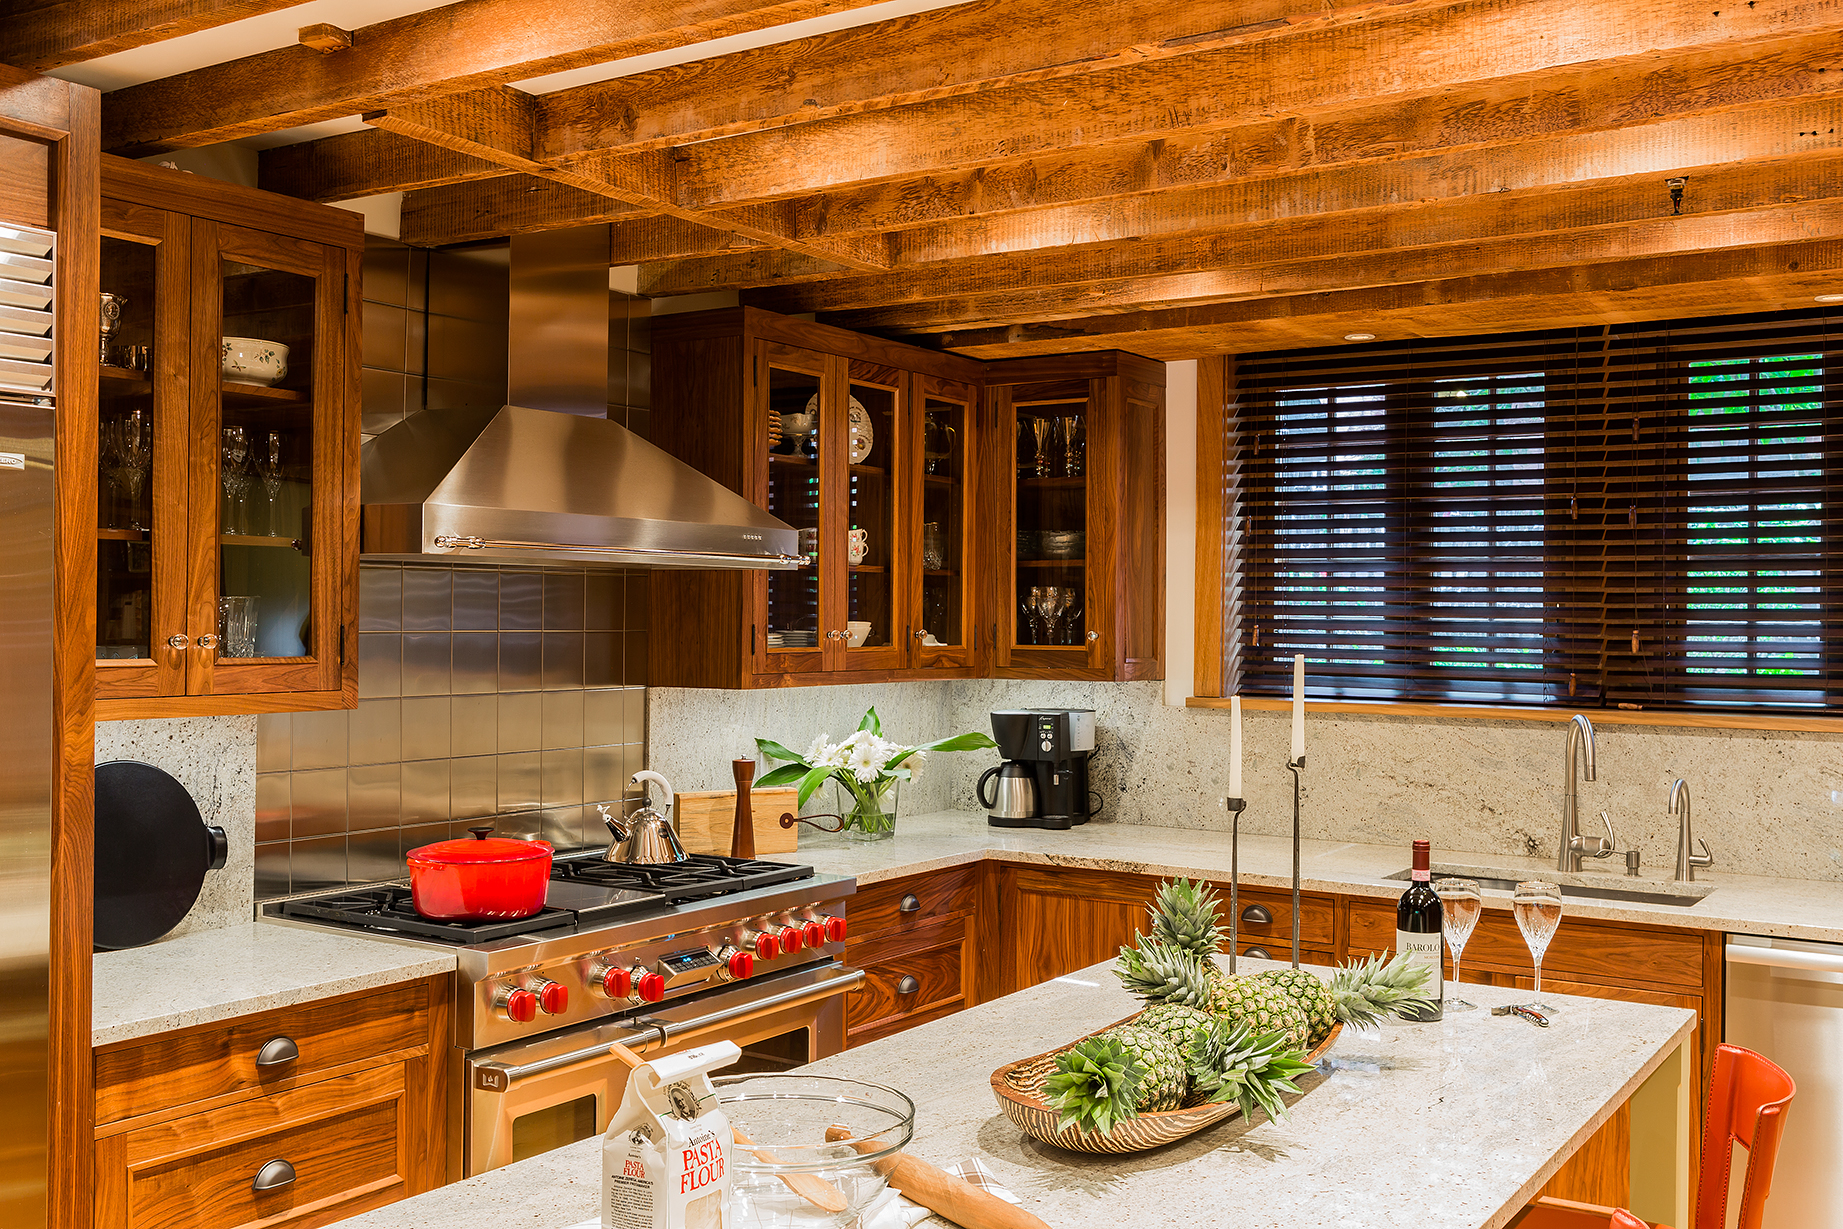 Beacon Hill walnut kitchen with original beams, stainless steel tiles and Kashmir granite.